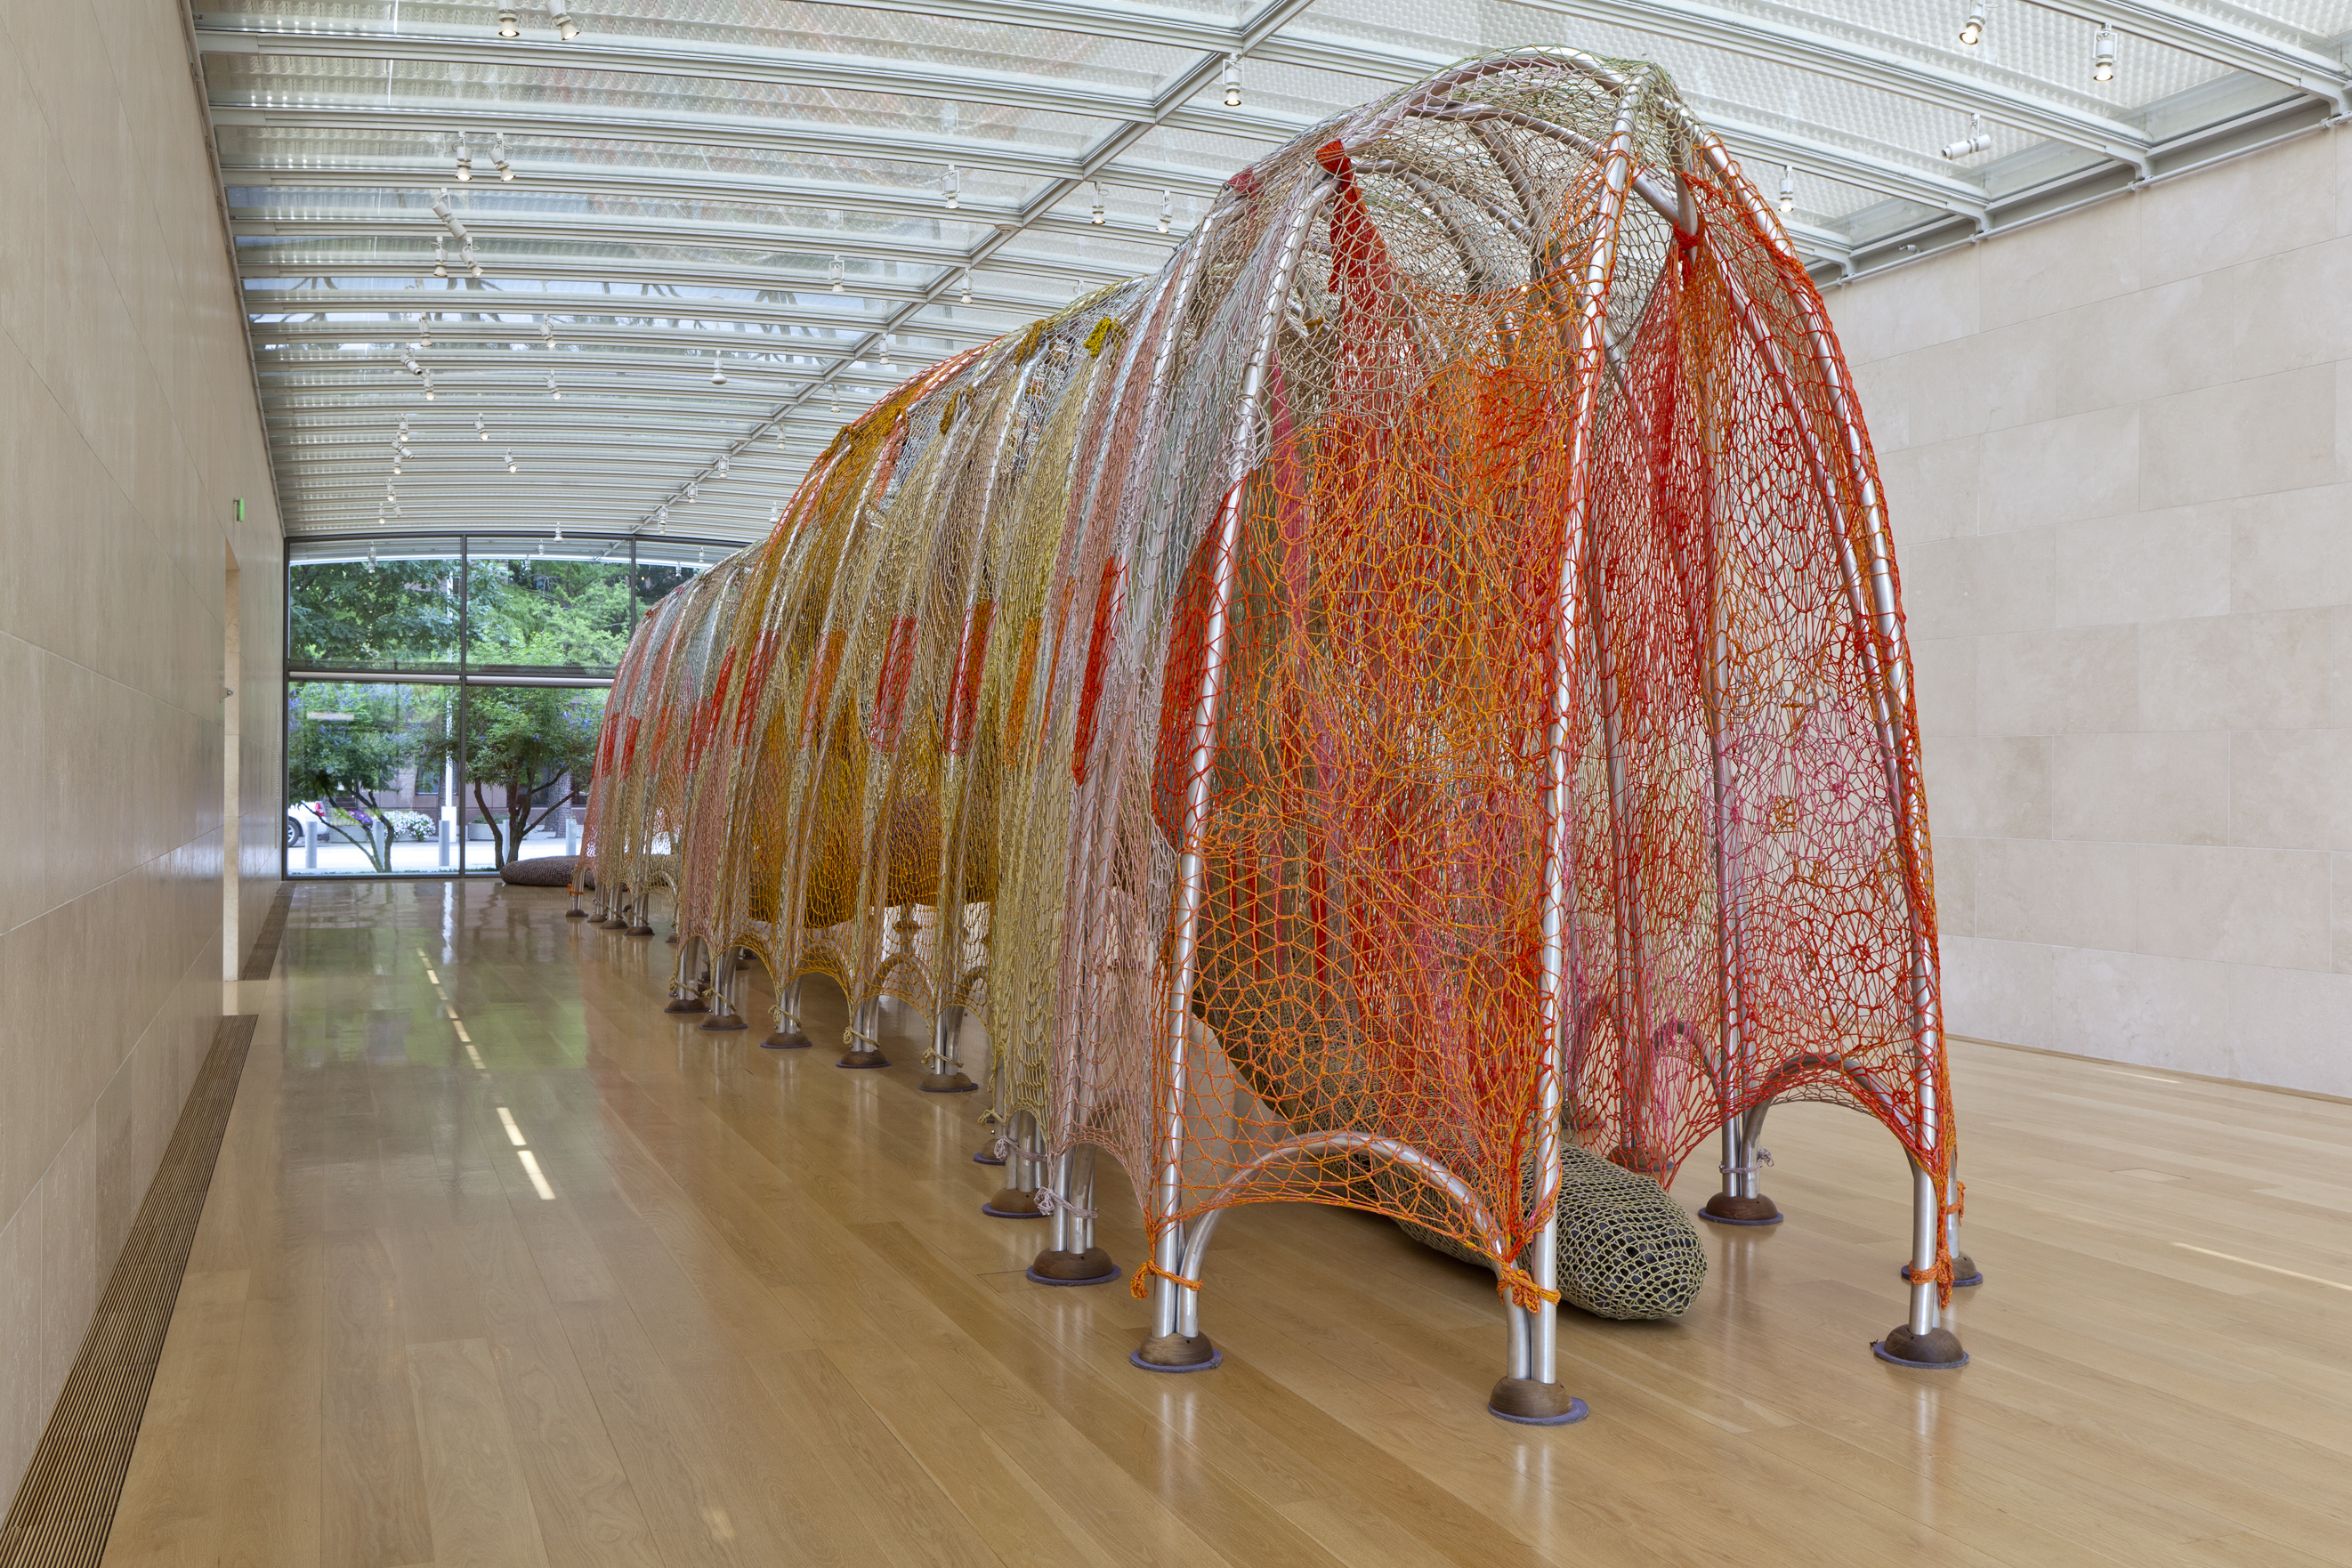 Ernesto Neto's work is meant to awaken our primal selves by inviting interaction